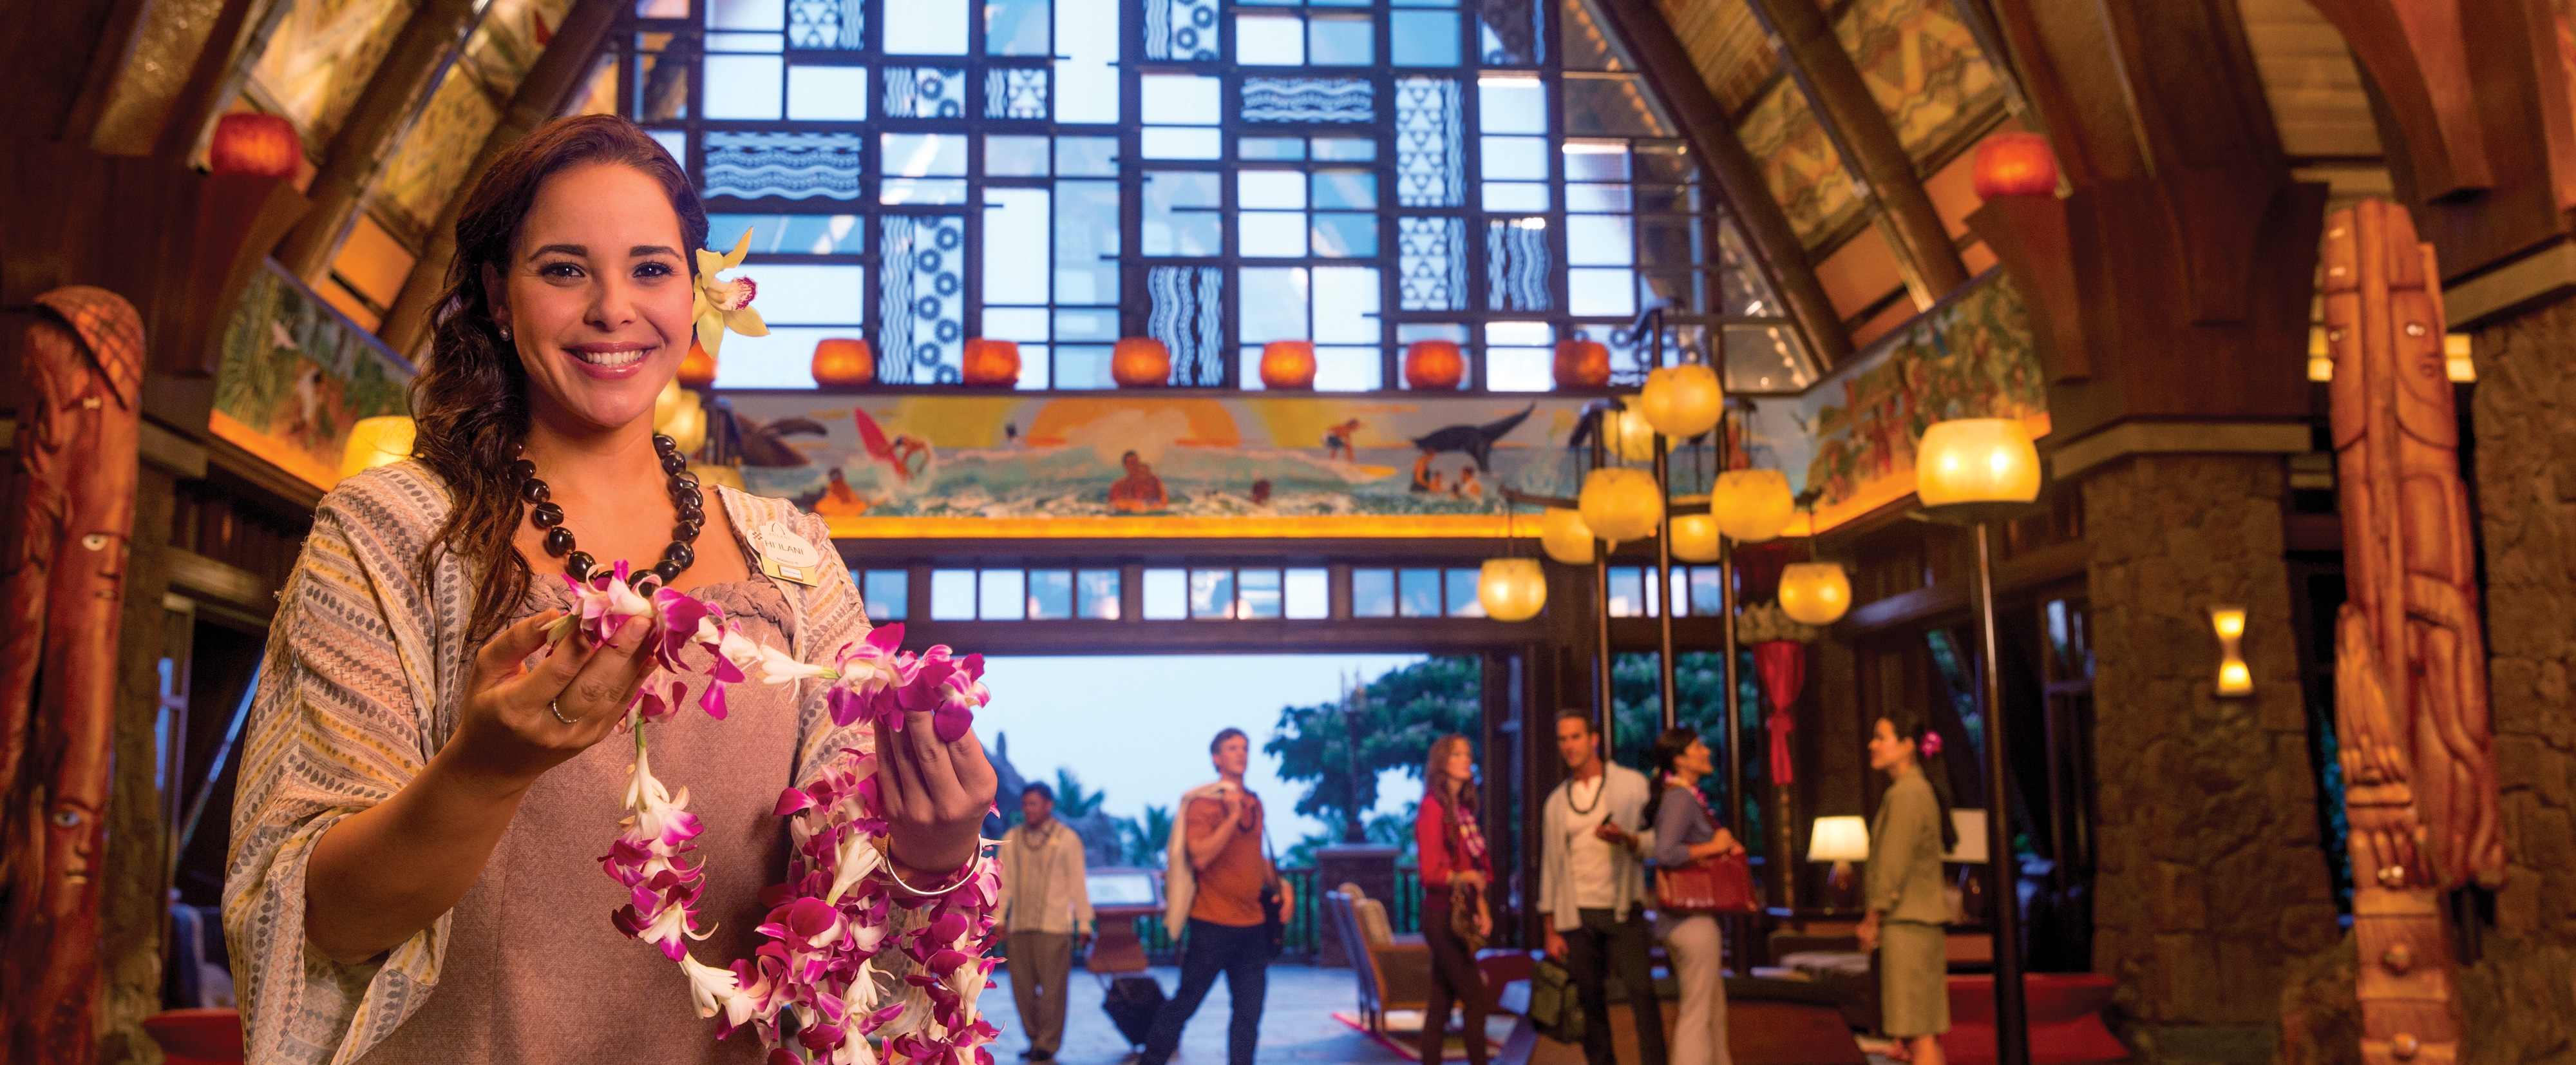 A smiling woman stands in the Aulani hotel holding out an orchid lei